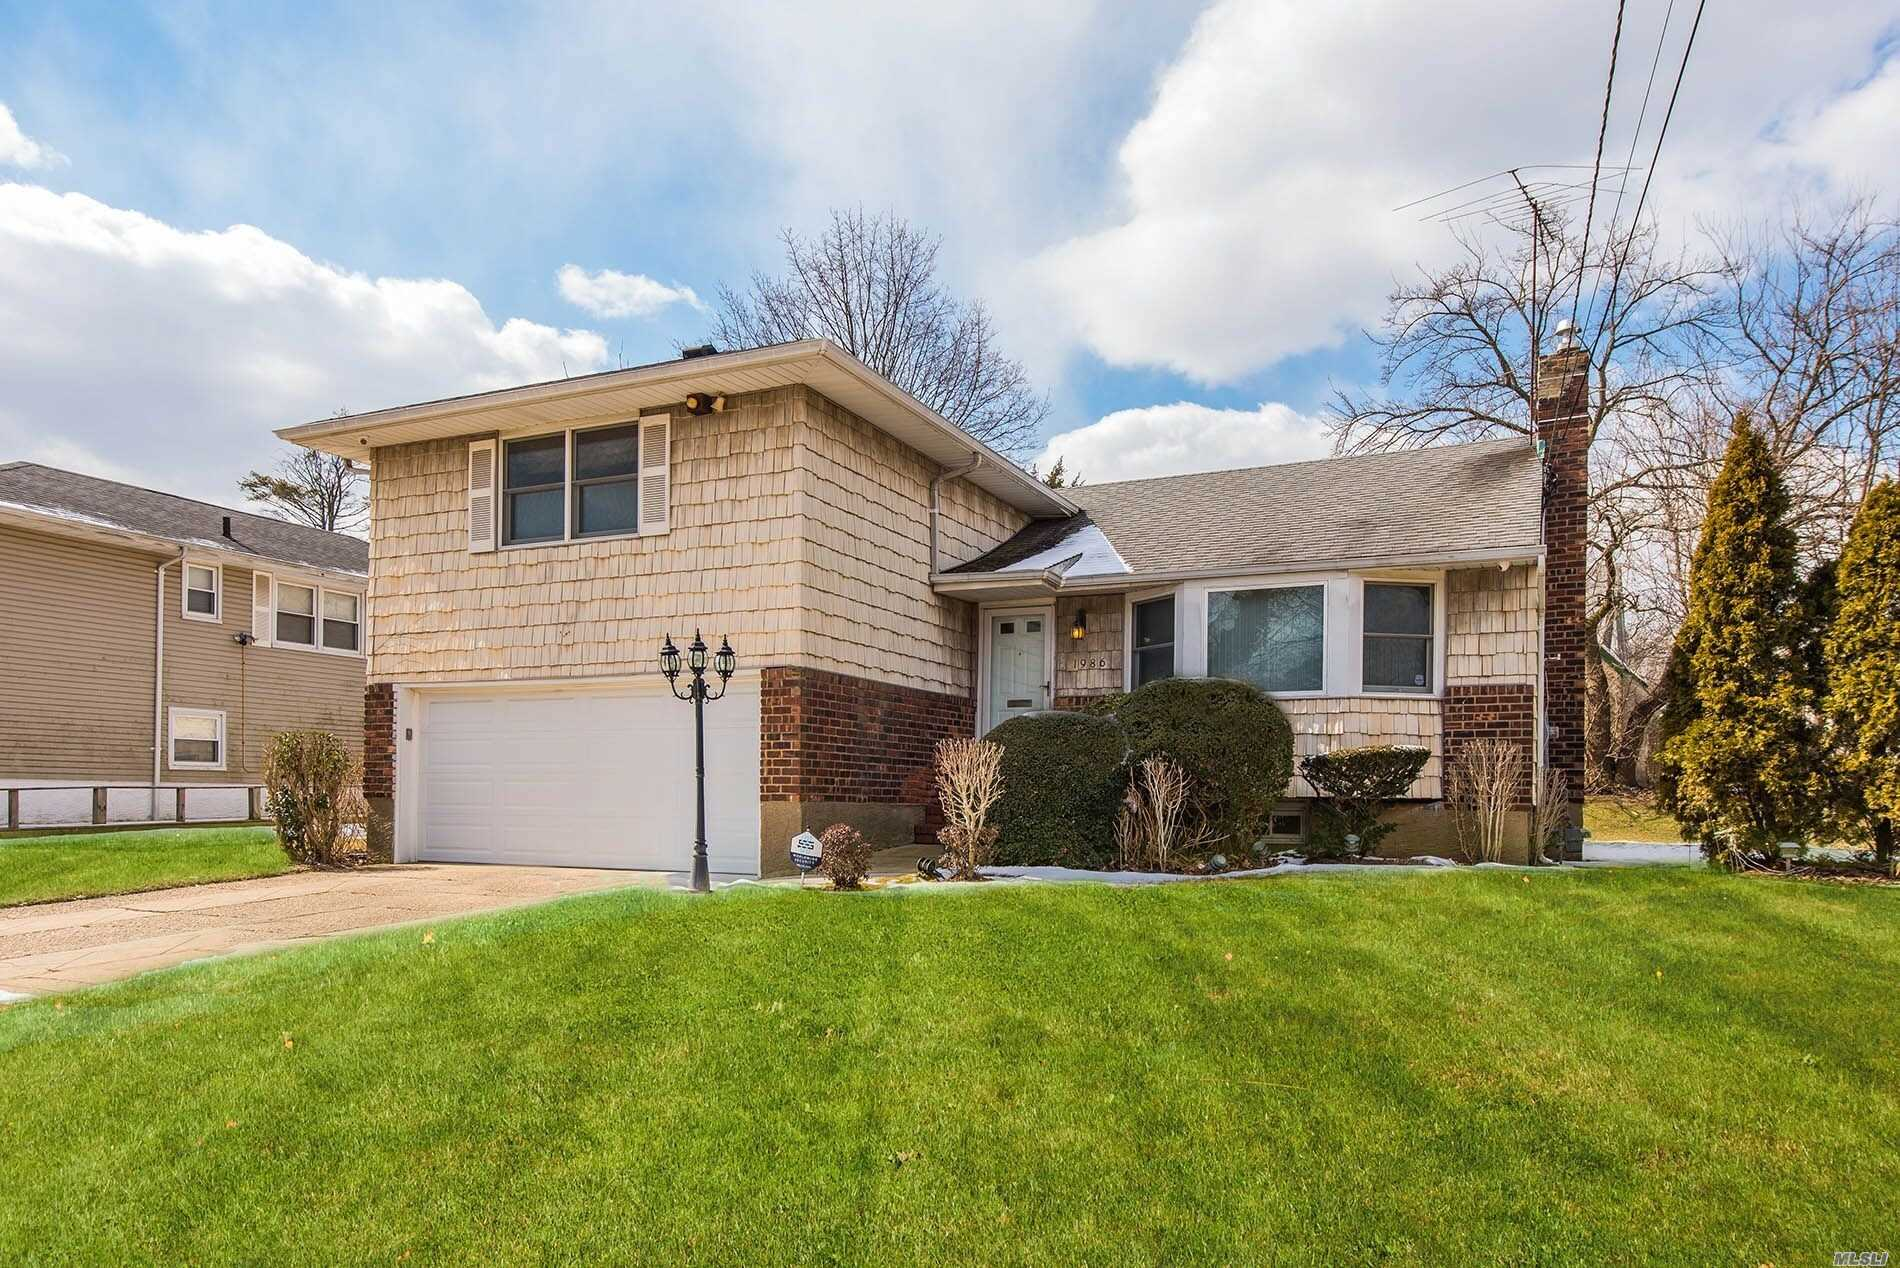 Nice Large Split On A Great Block In Baldwin. House Has Three Full Bathrooms Plus A Half Bathroom, And Lots Of Room For A Growing Family. Large Side And Back Yard. Not A Short Sale, Not An Reo. Make This House Yours.